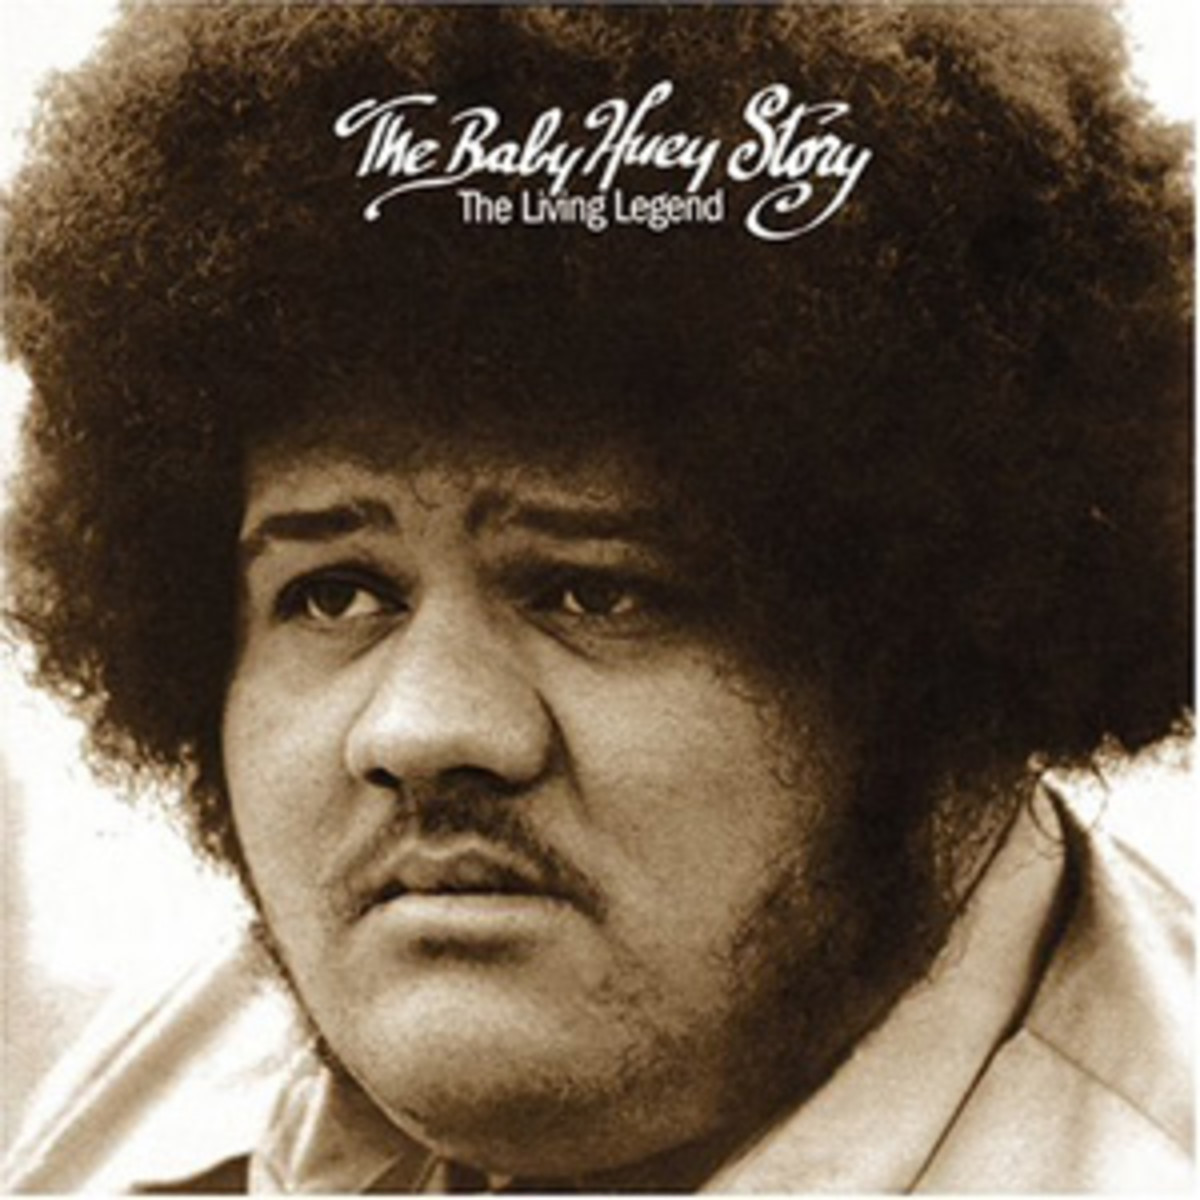 Baby Huey's only album.